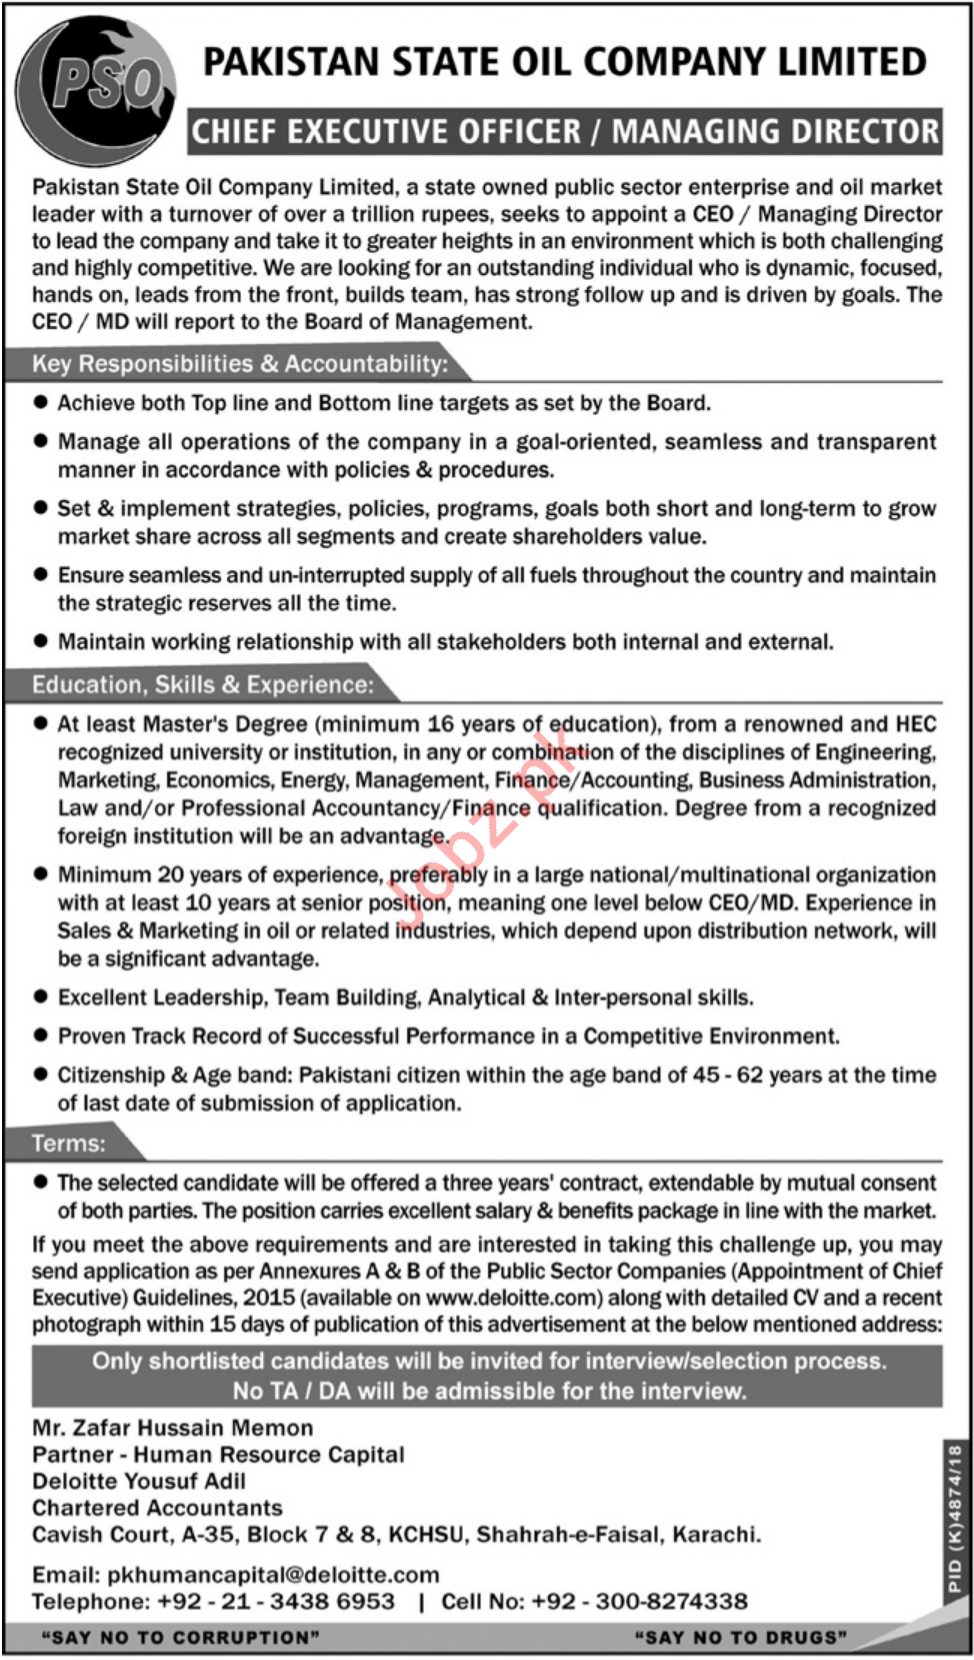 PSO Pakistan State Oil Company Limited Jobs 2019